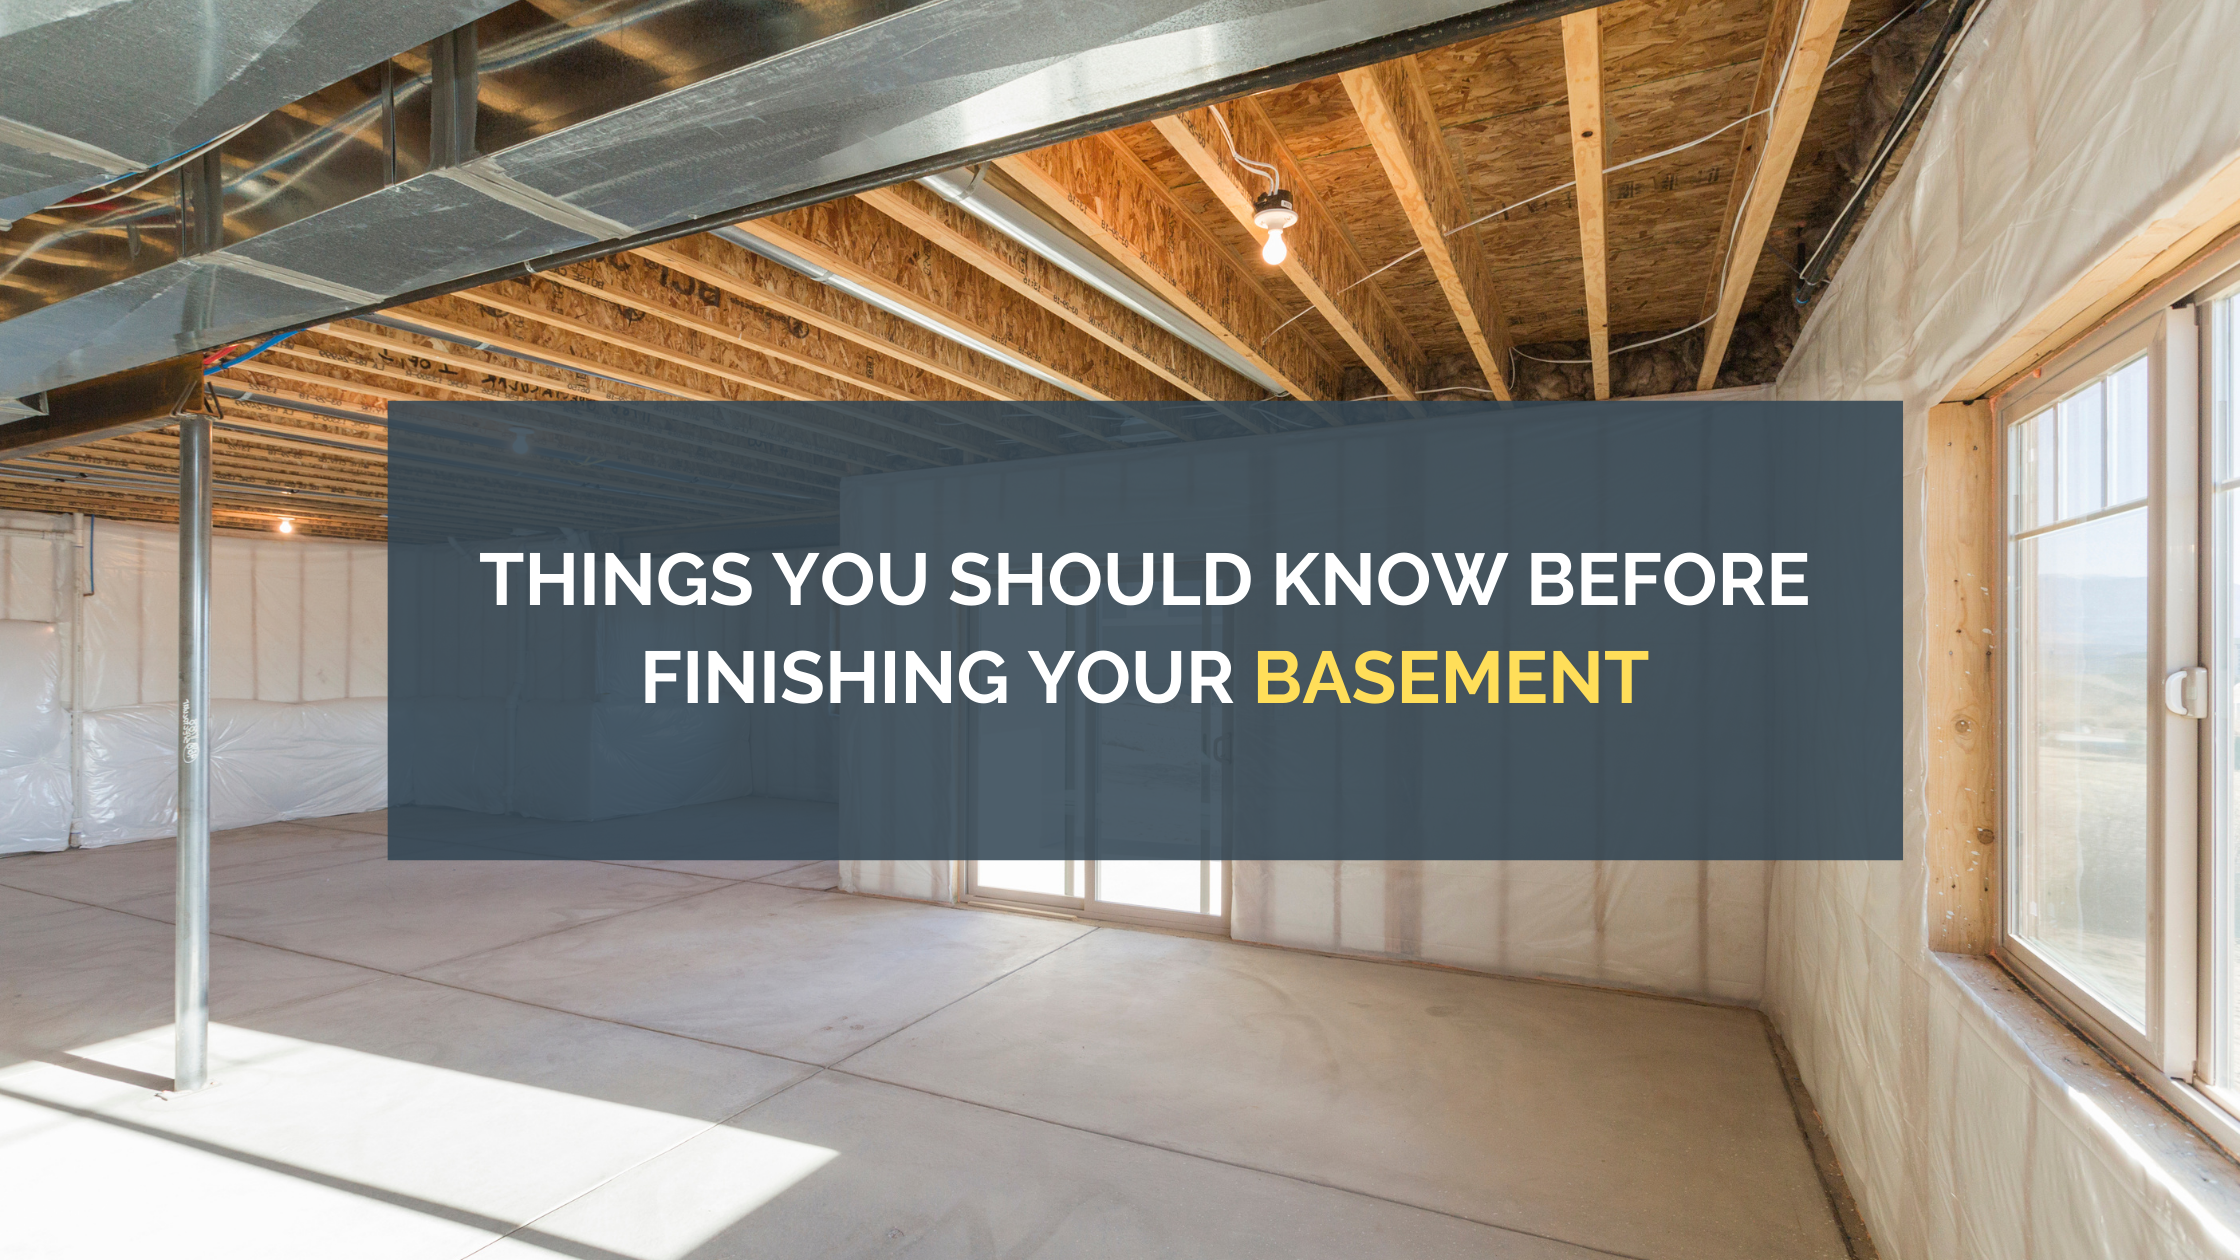 Things You Should Know Before Finishing Your Basement